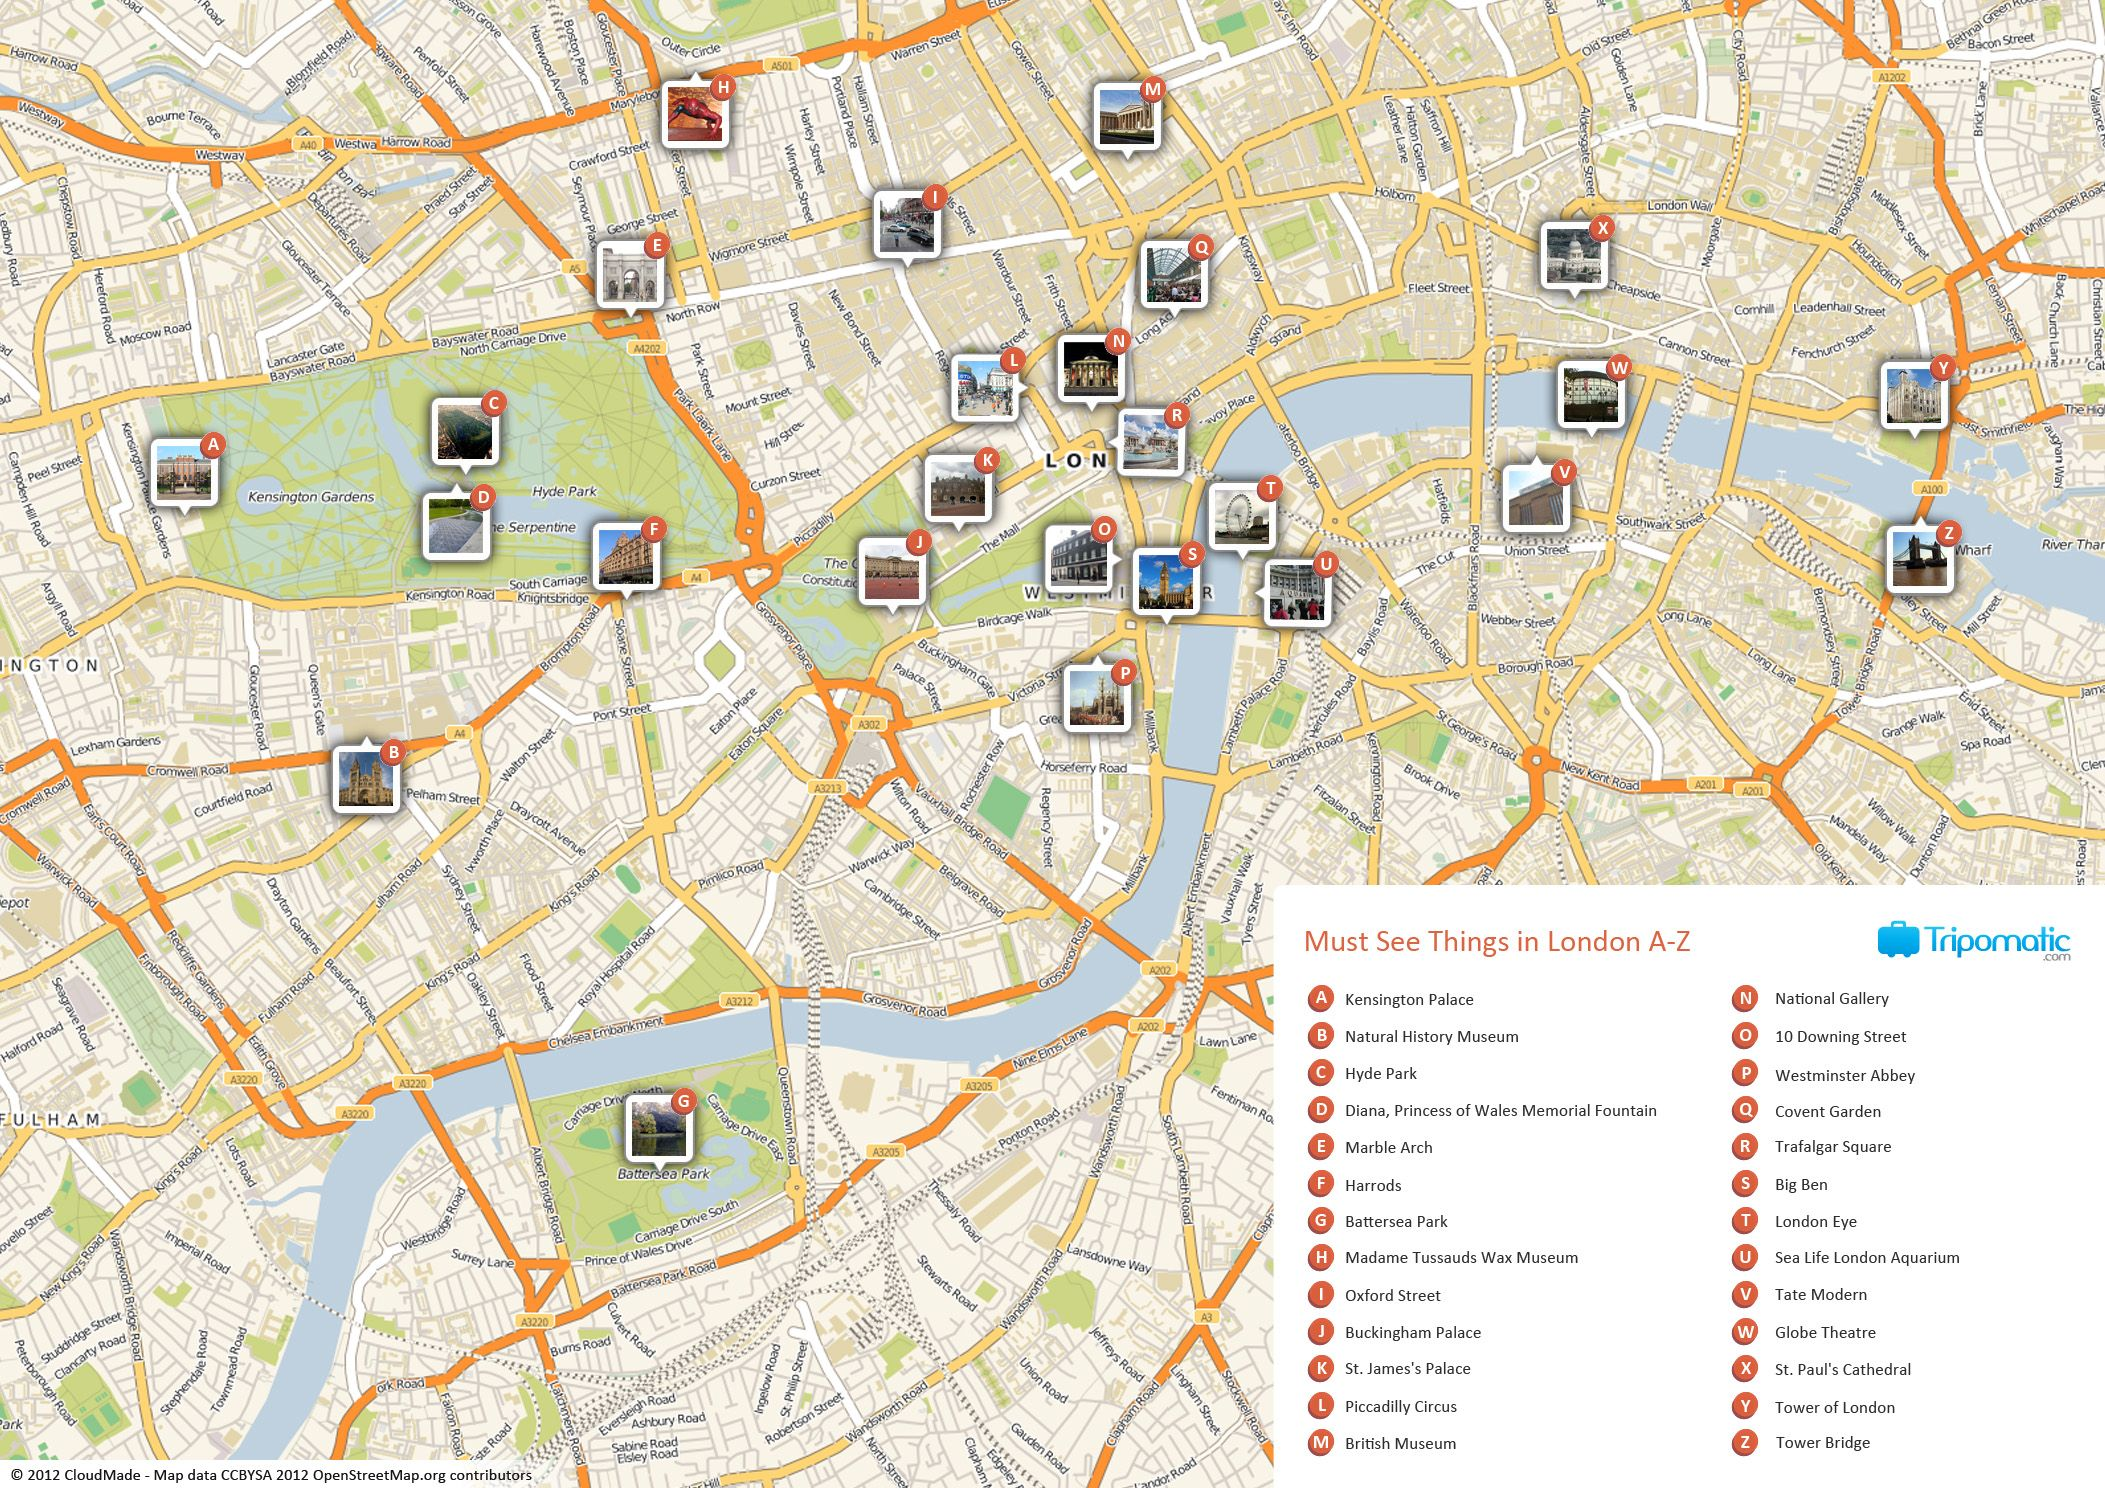 Worksheet. Free Printable Map of London attractions from Tripomaticcom Get